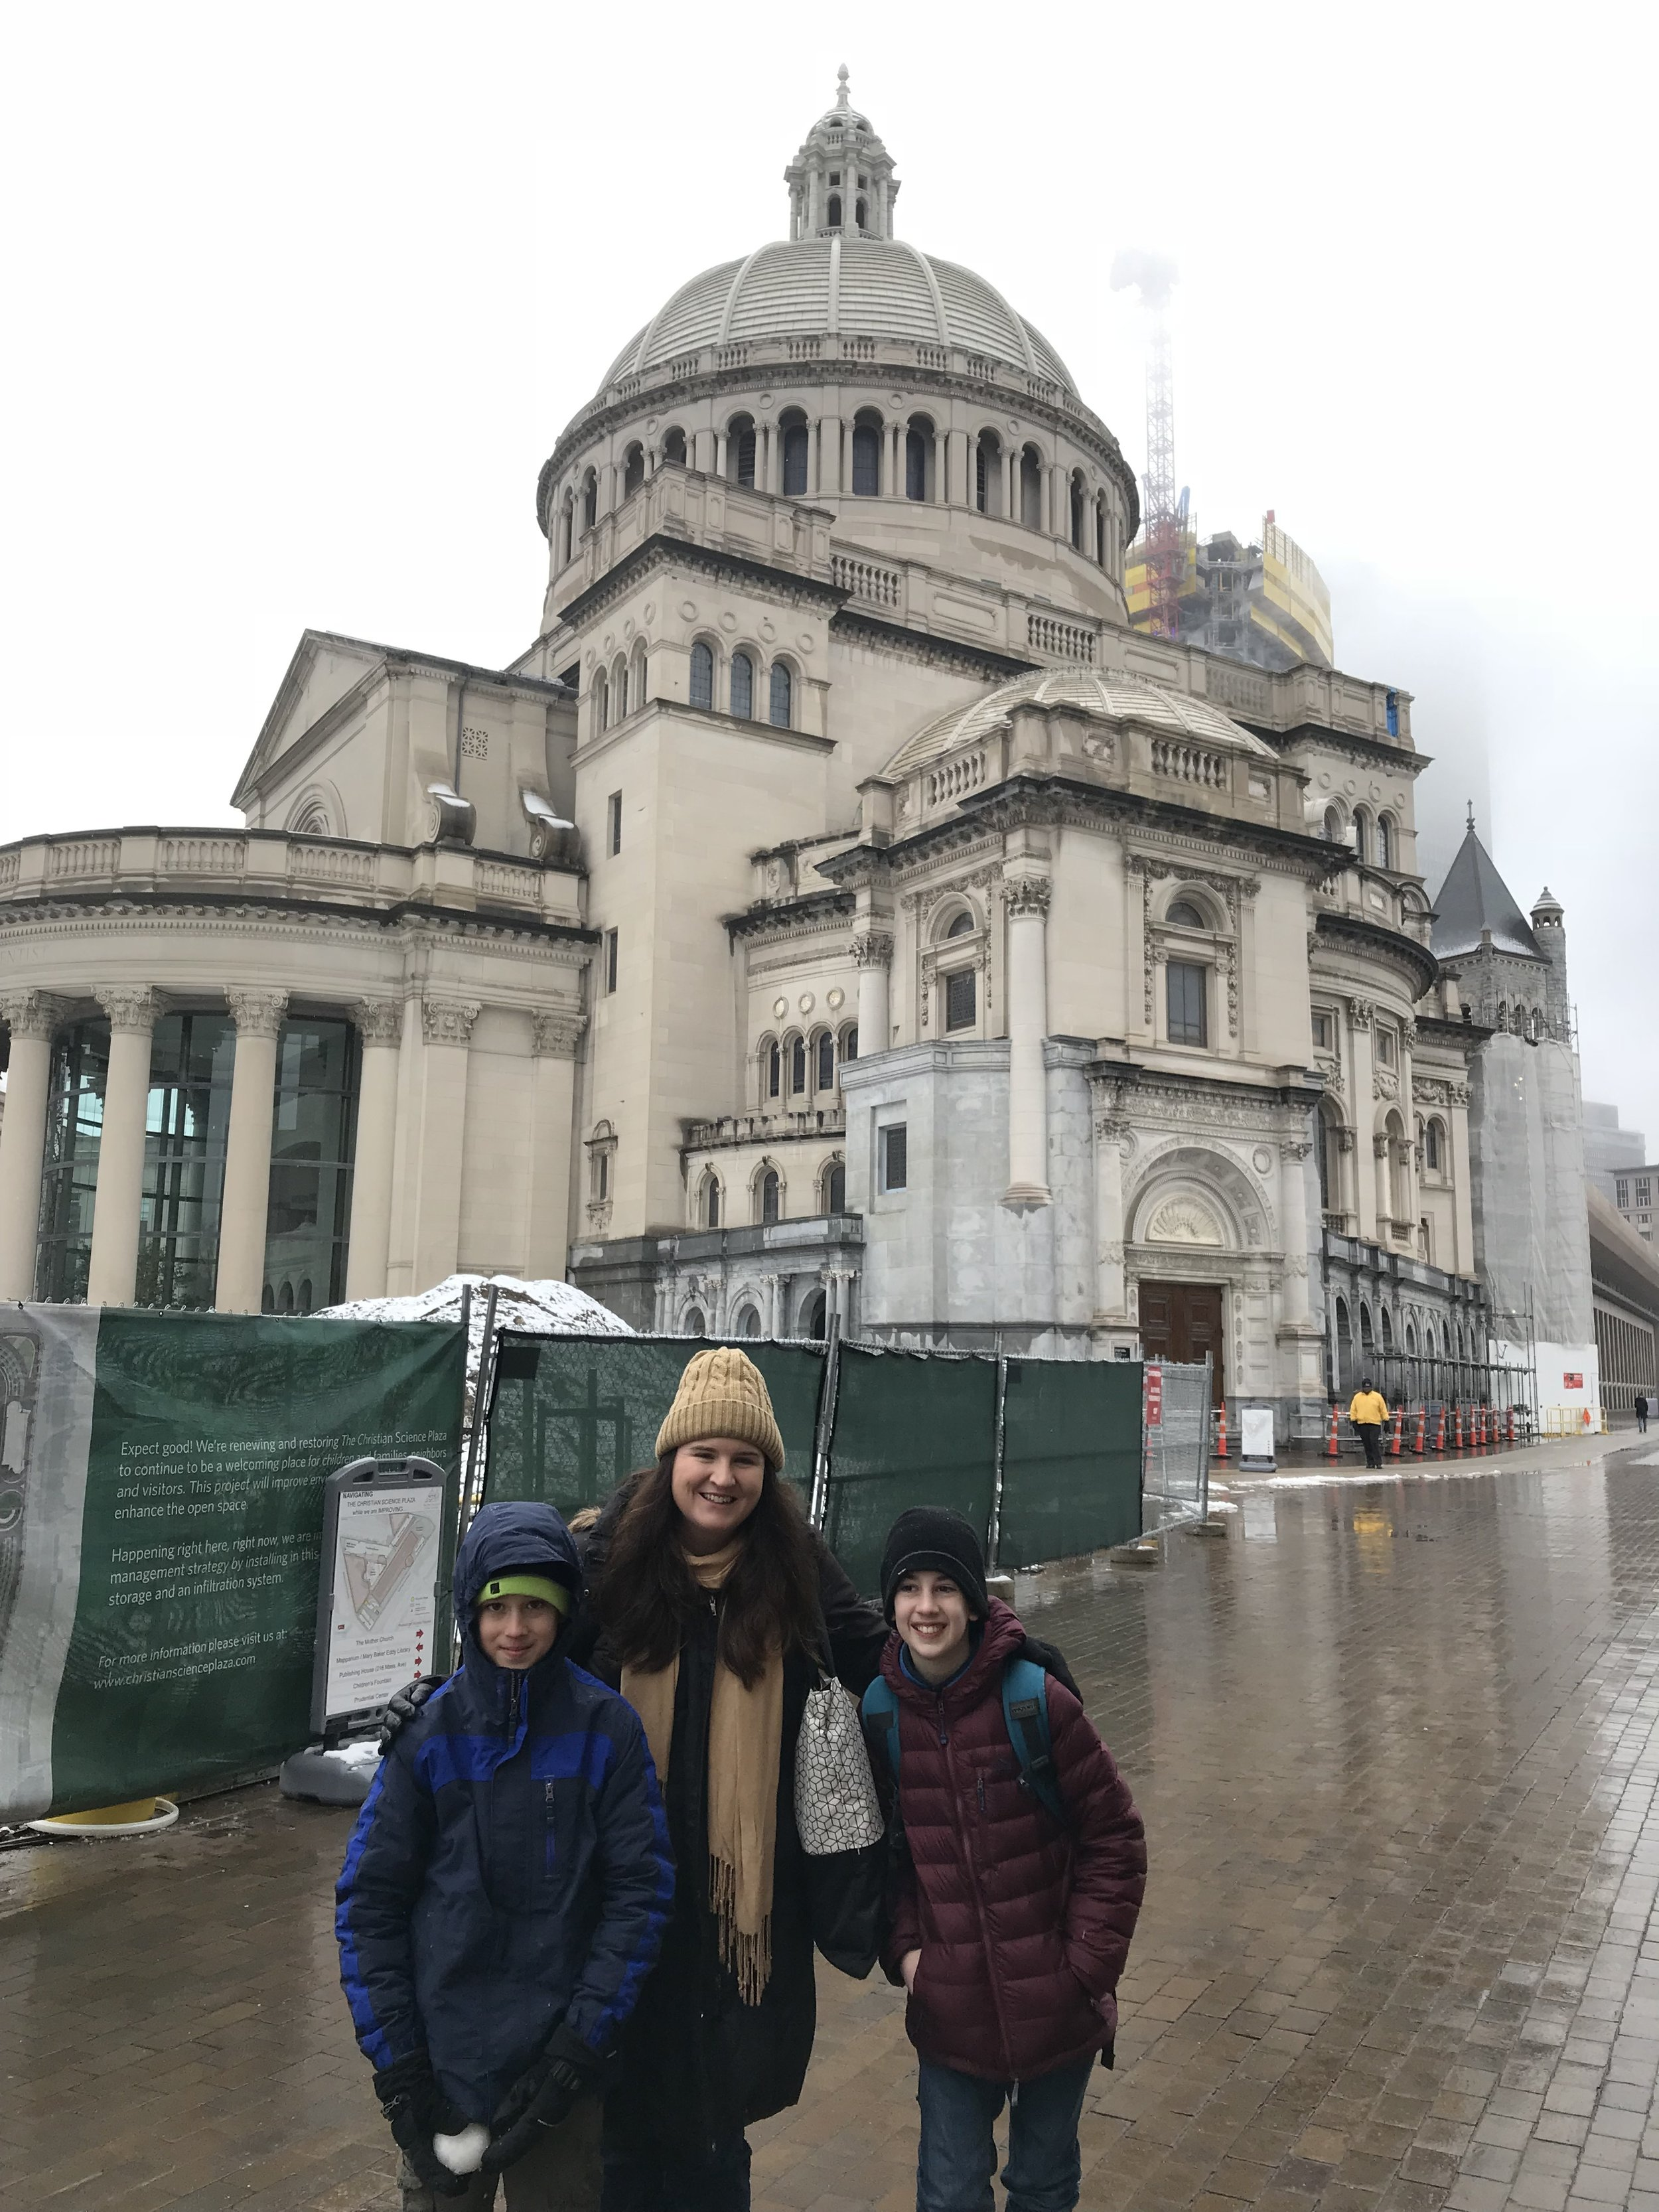 Katherine with the Ortiz boys at the Christian Science Church in Boston's South End